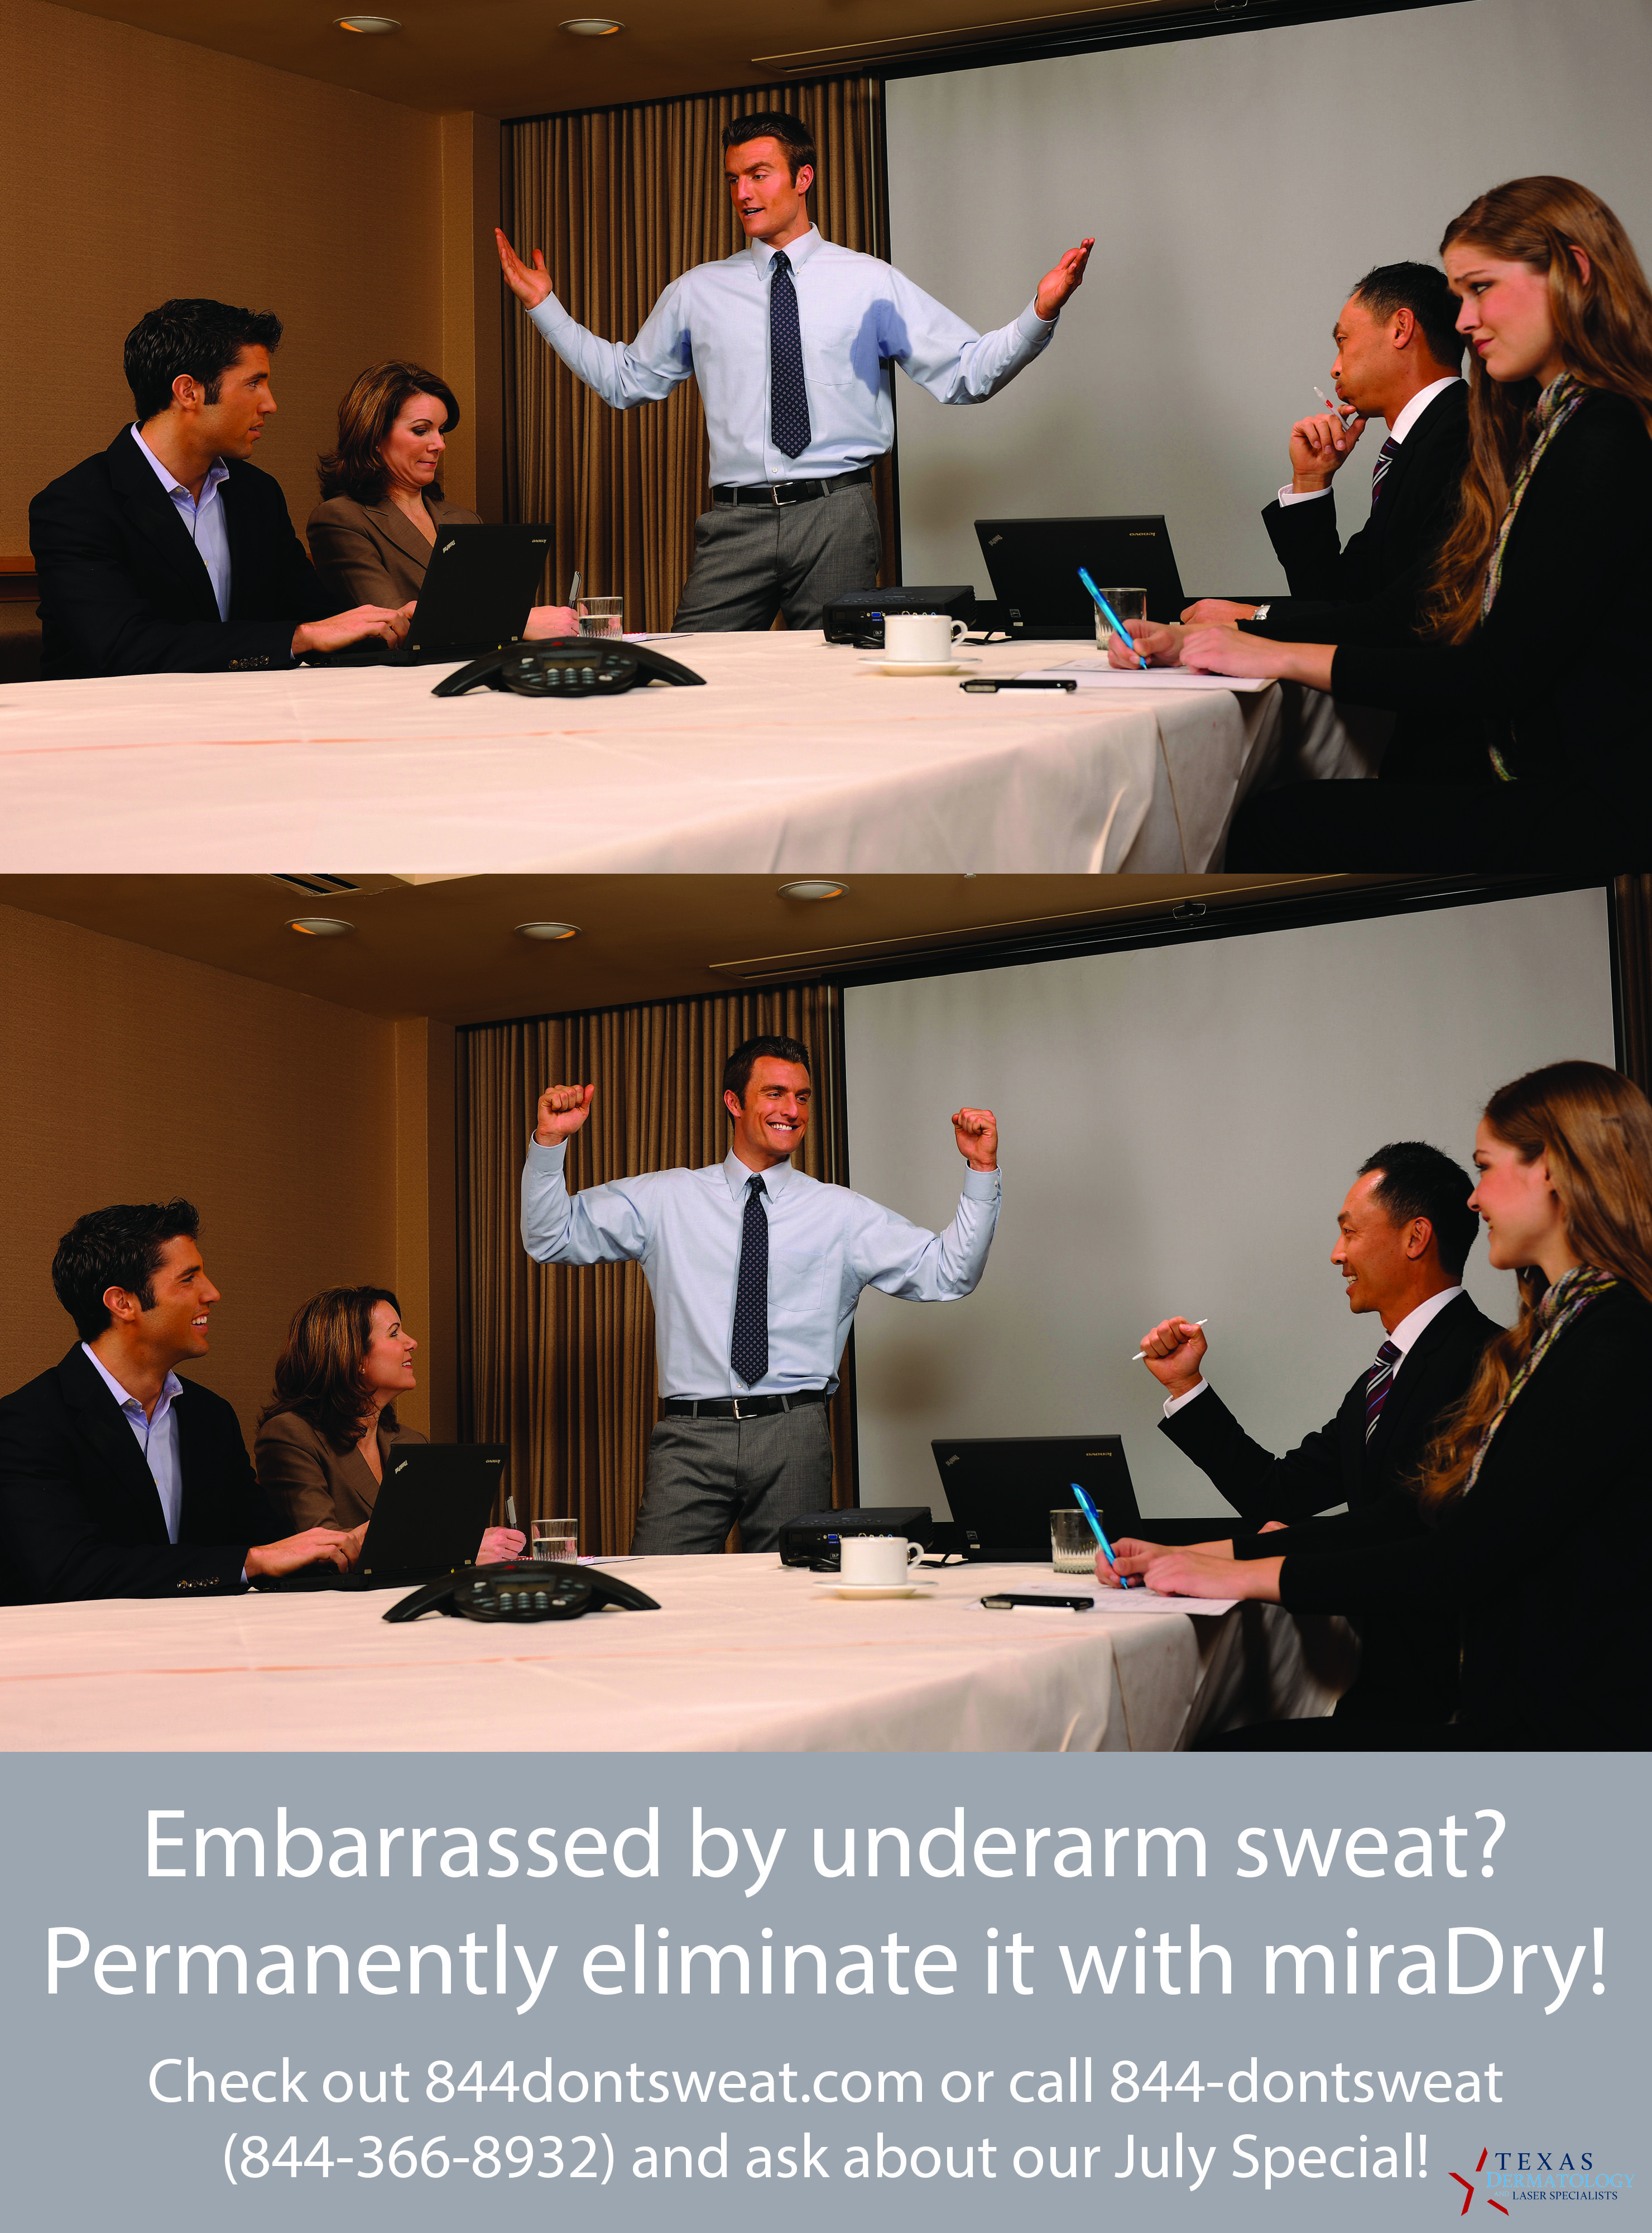 Embarrassed by underarm sweat? Permanently eliminate it with